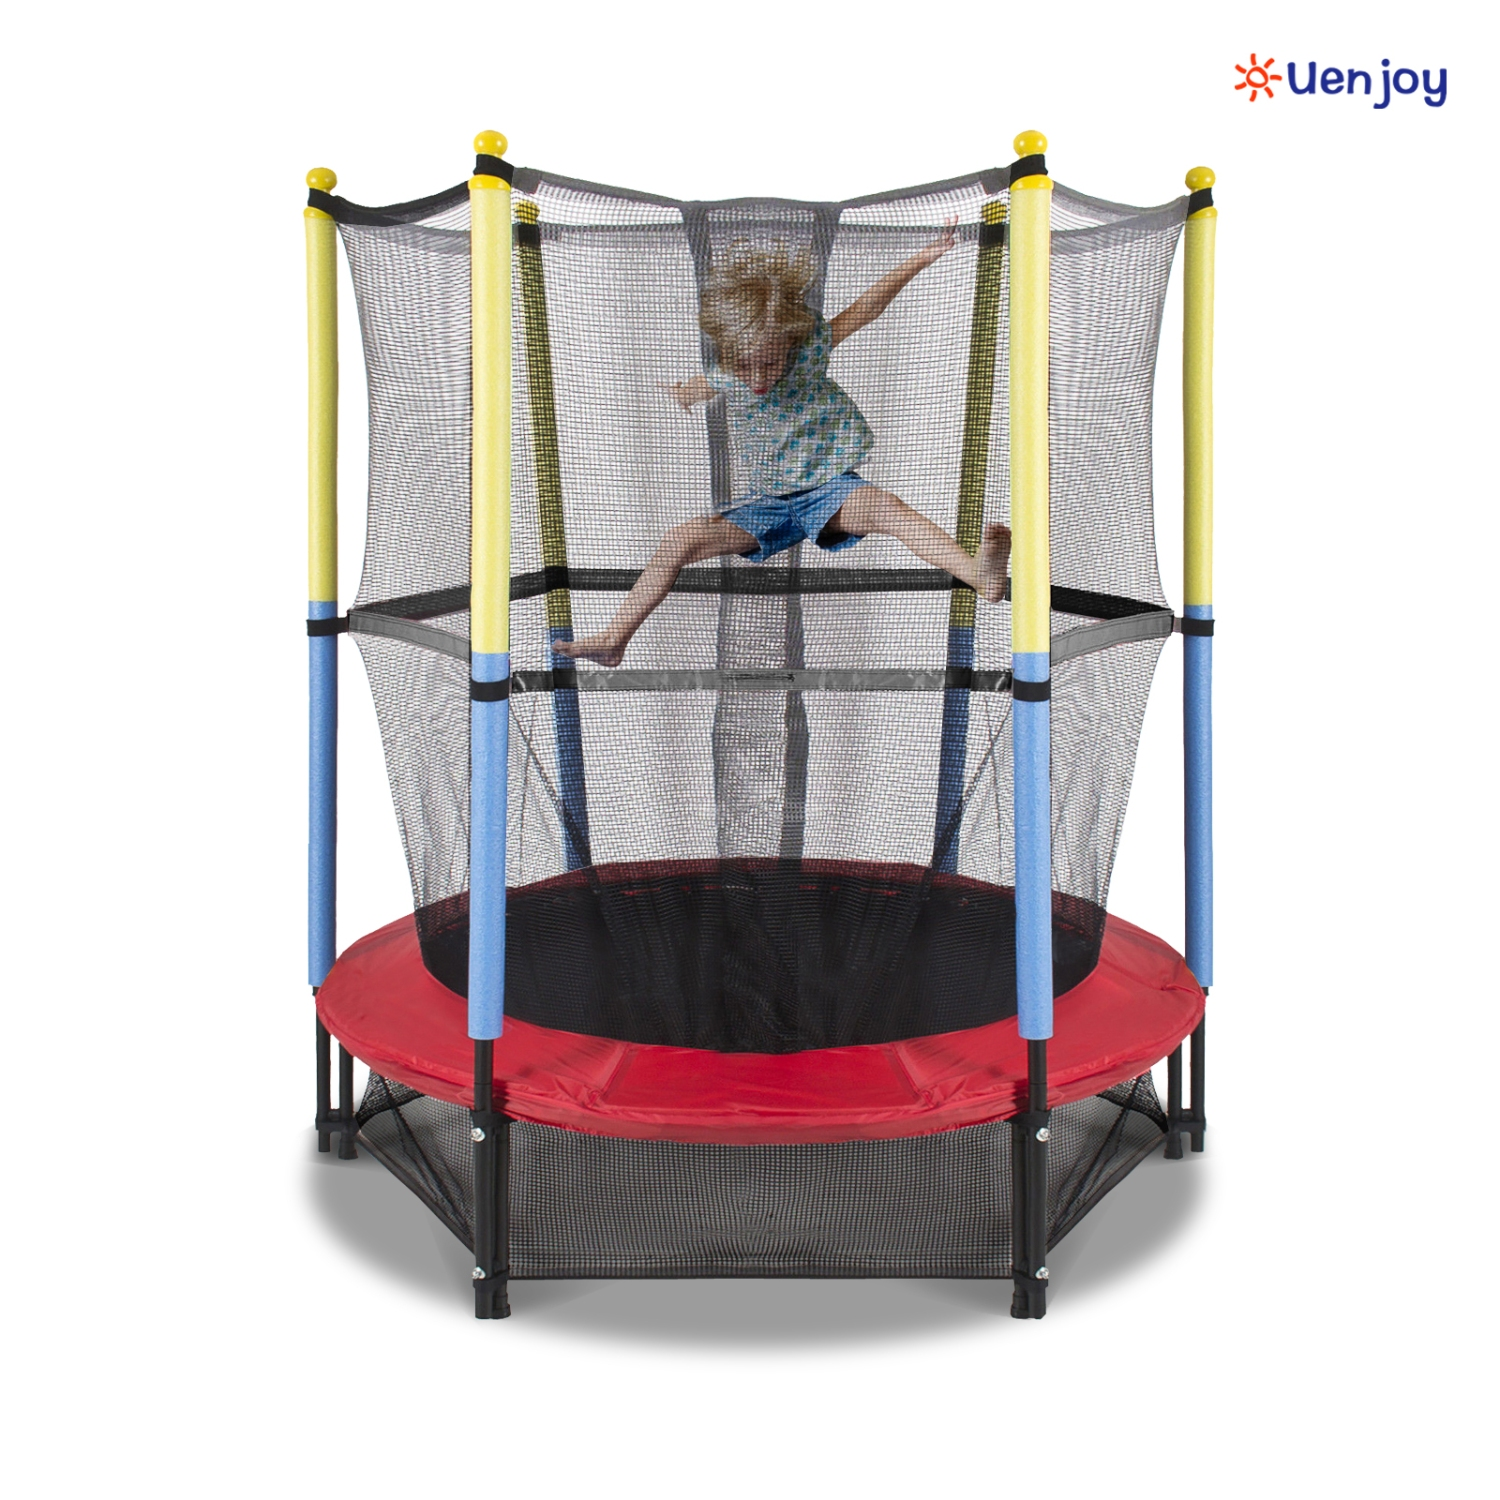 "New 14ft Trampoline Combo Bounce Jump Safety Enclosure Net: 55"" Round Kids Mini Trampoline Combo W/Enclosure Net Pad"